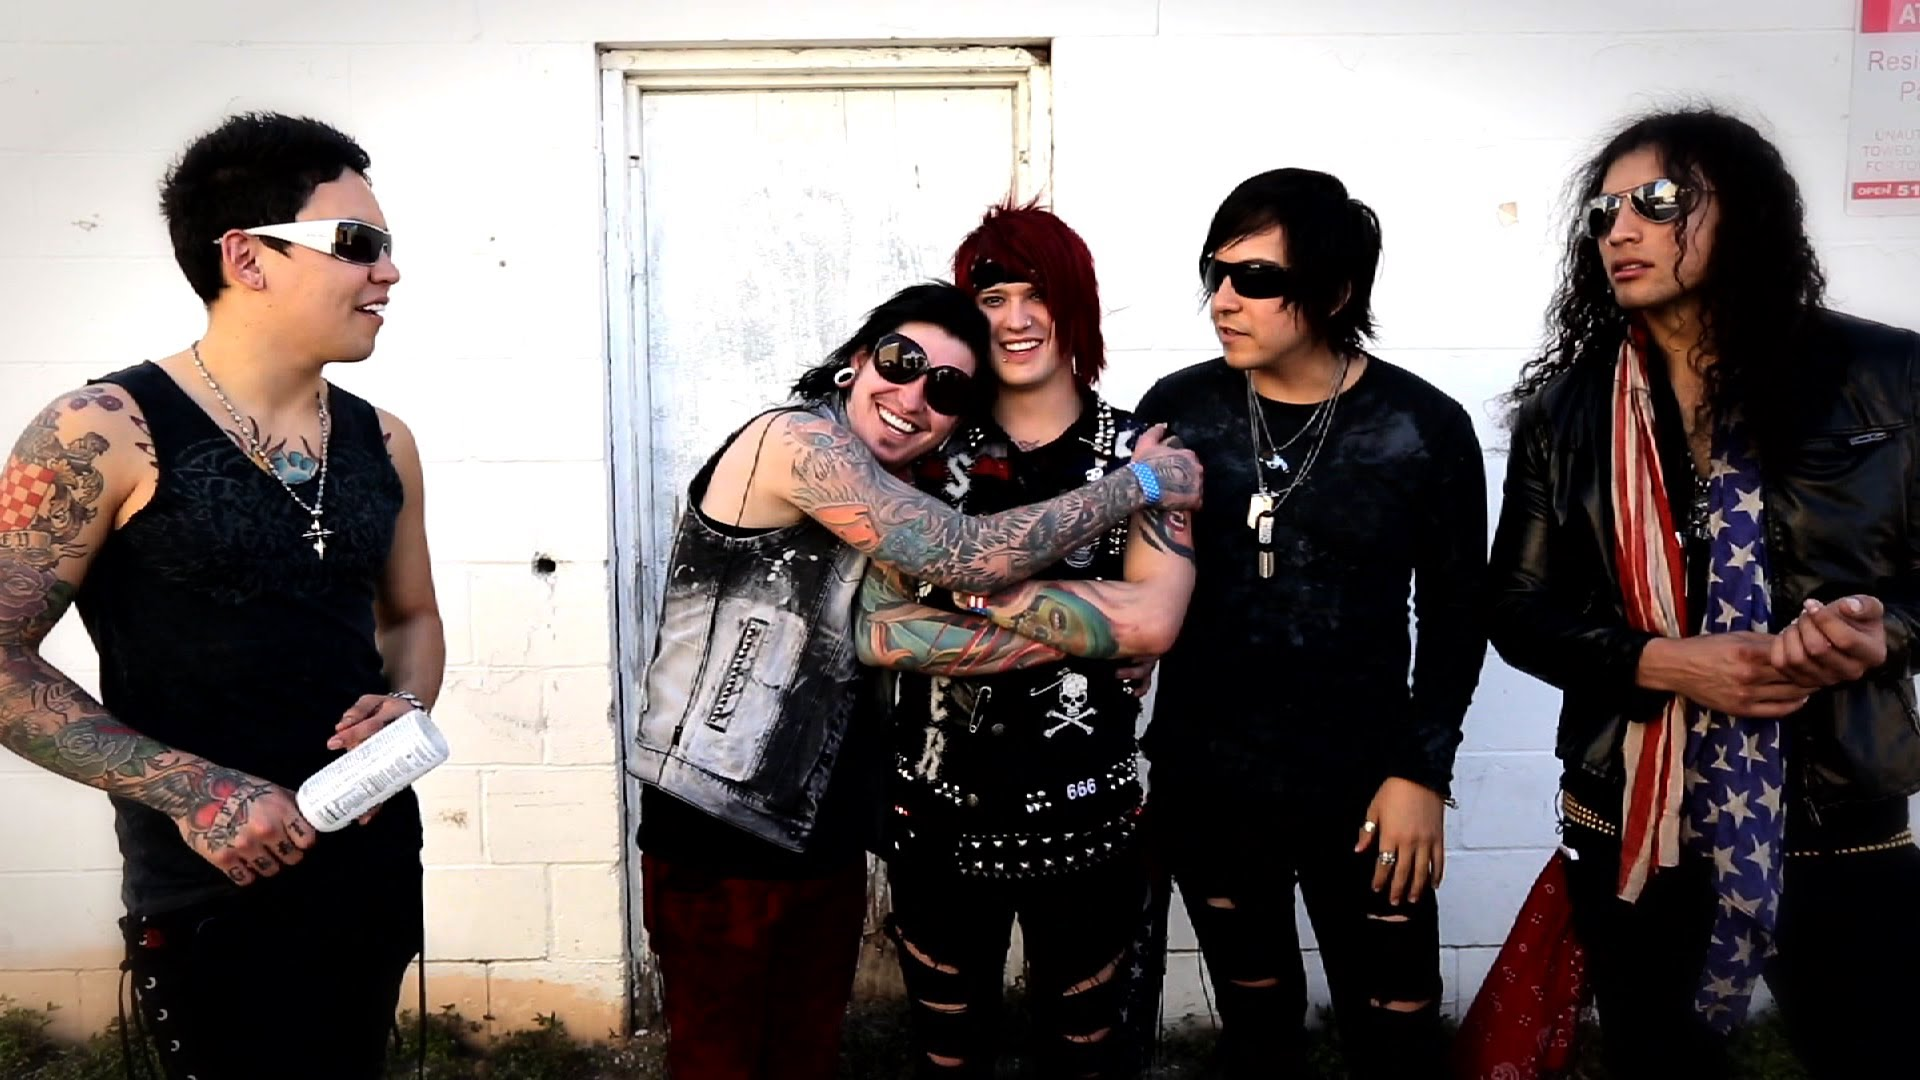 Escape The Fate Wallpaper by Houndoom on DeviantArt 1920x1080